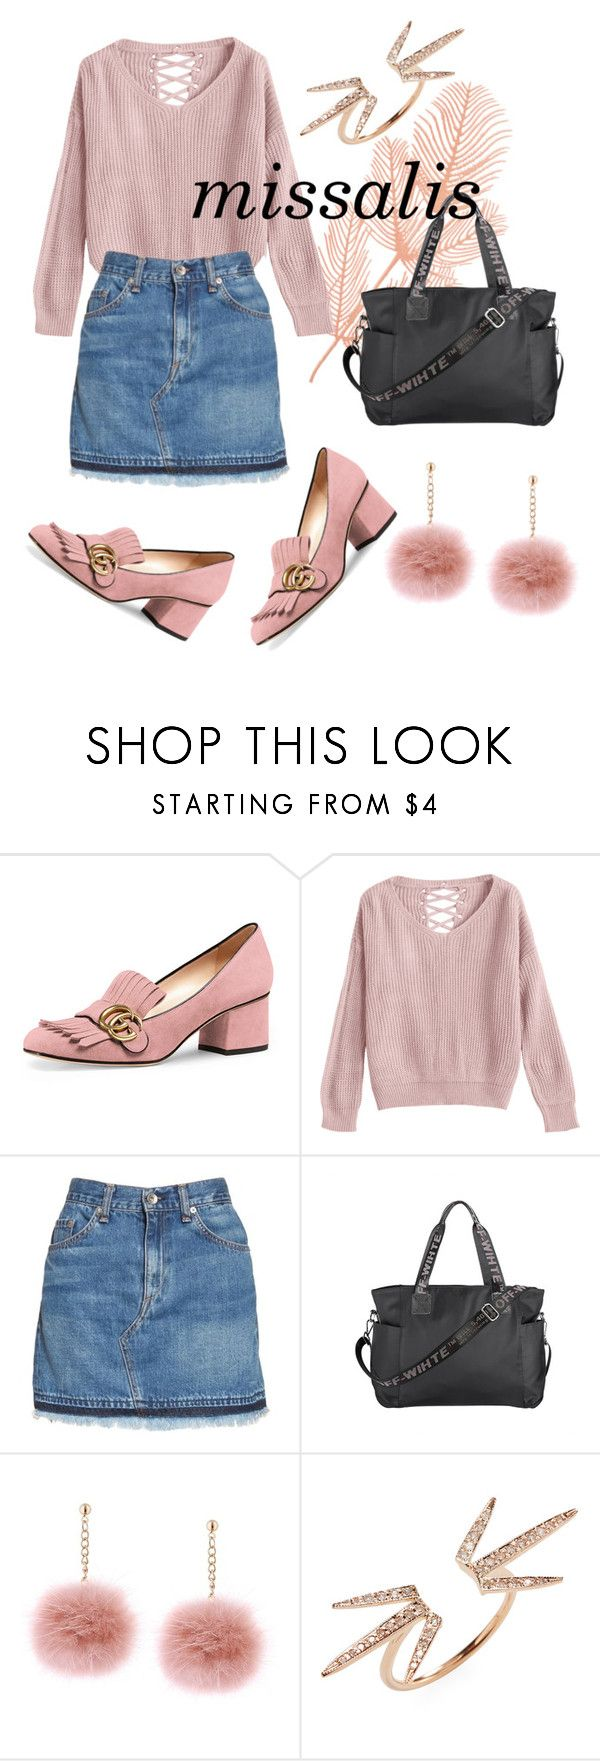 """""""missalis pink autumn"""" by wodluckbeens on Polyvore featuring Gucci, rag & bone/JEAN and Jacquie Aiche"""